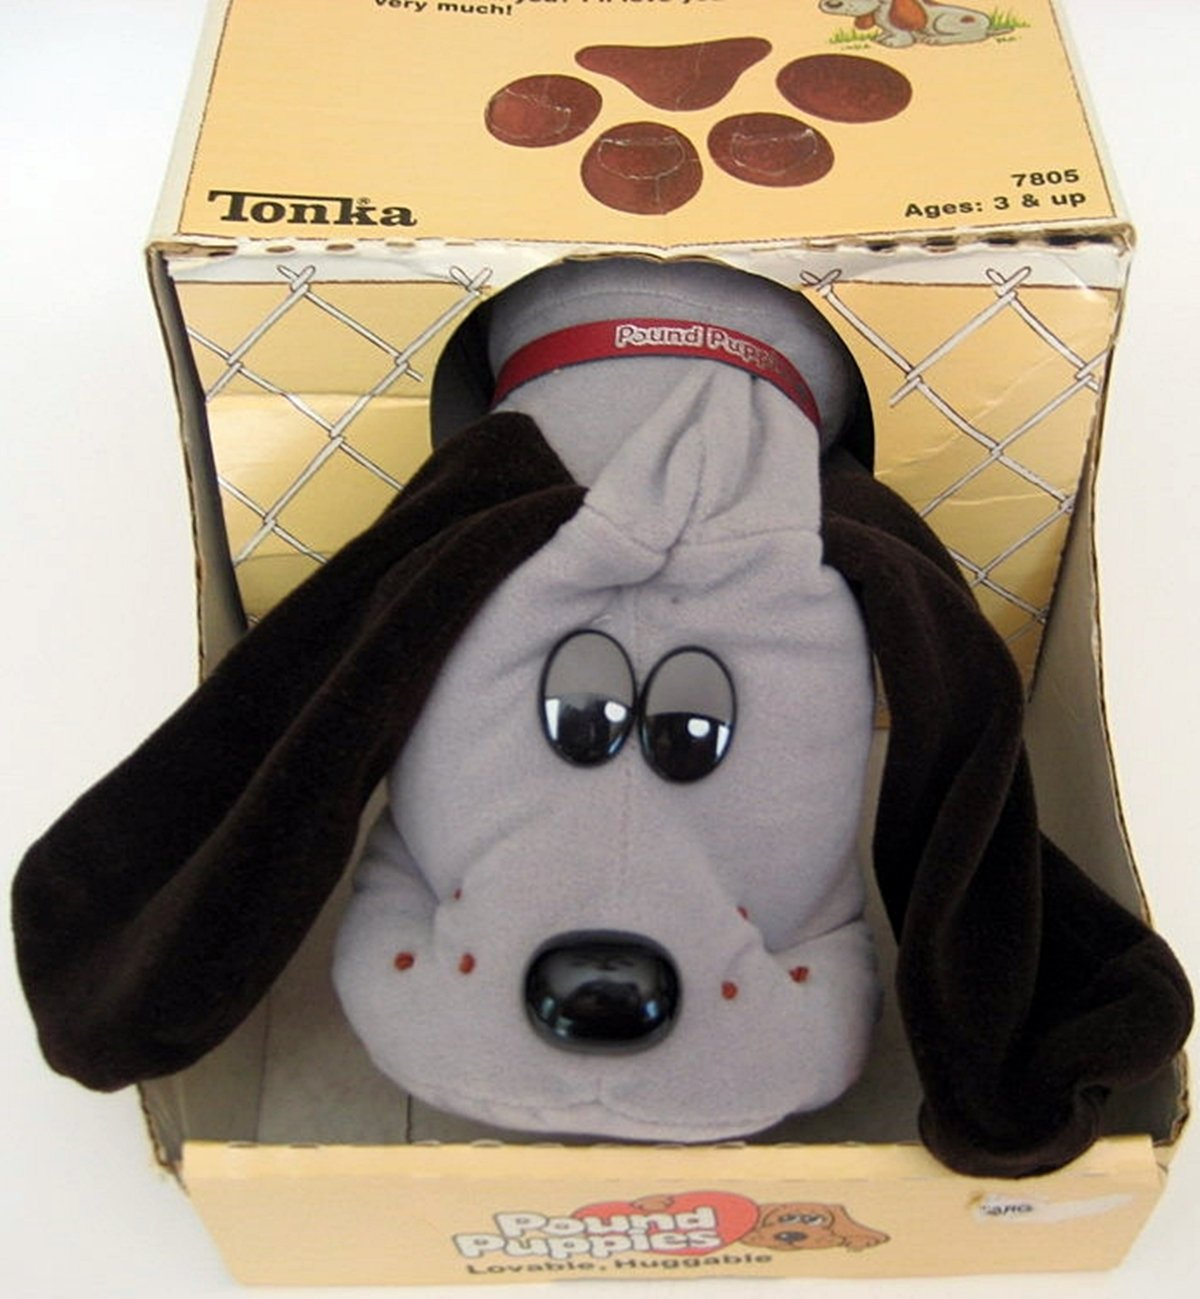 An example of Pound Puppies